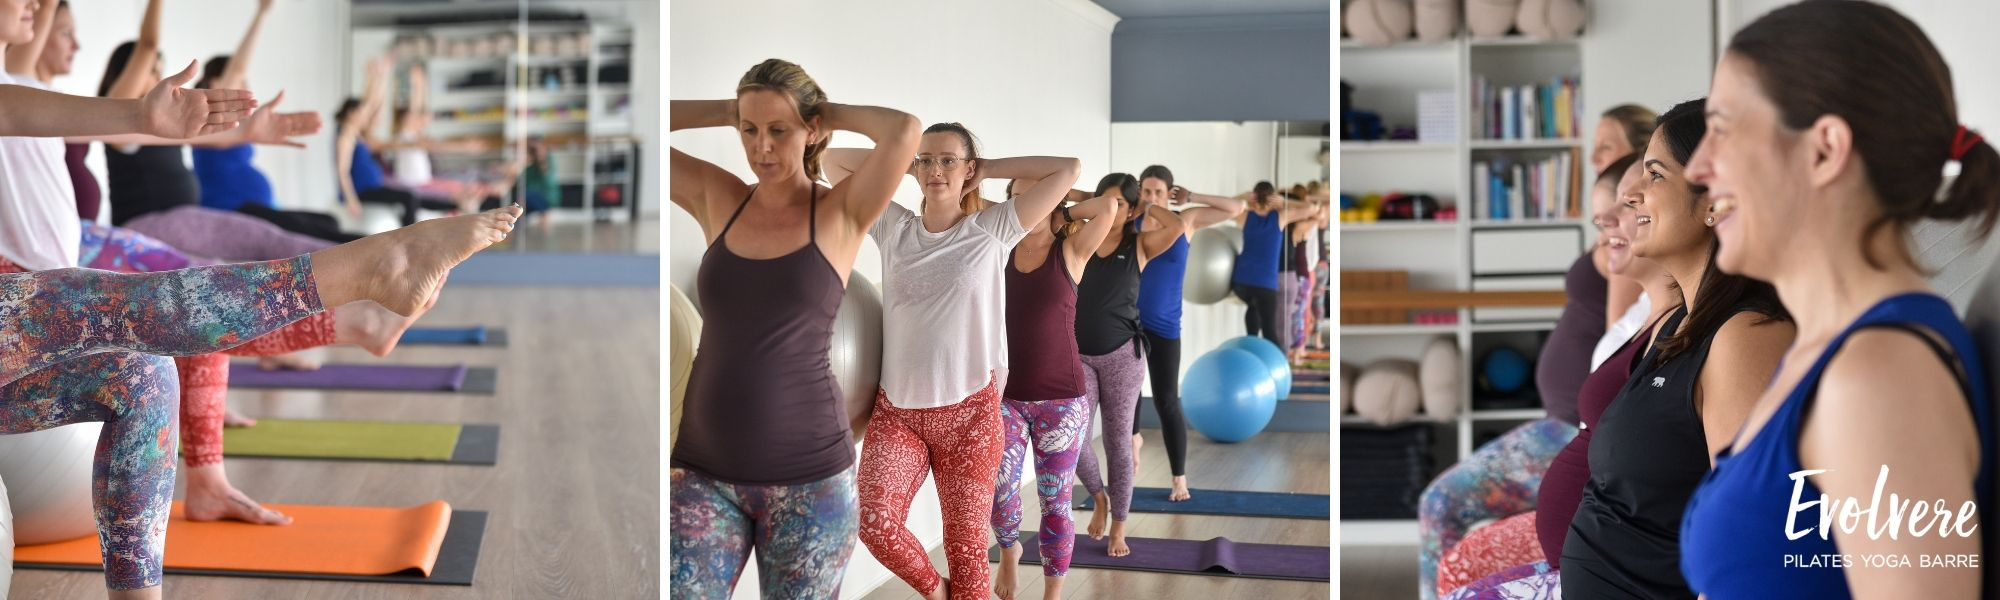 Pilates for pregnancy pelvic floor strength and stability at Evolvere in Lane Cove